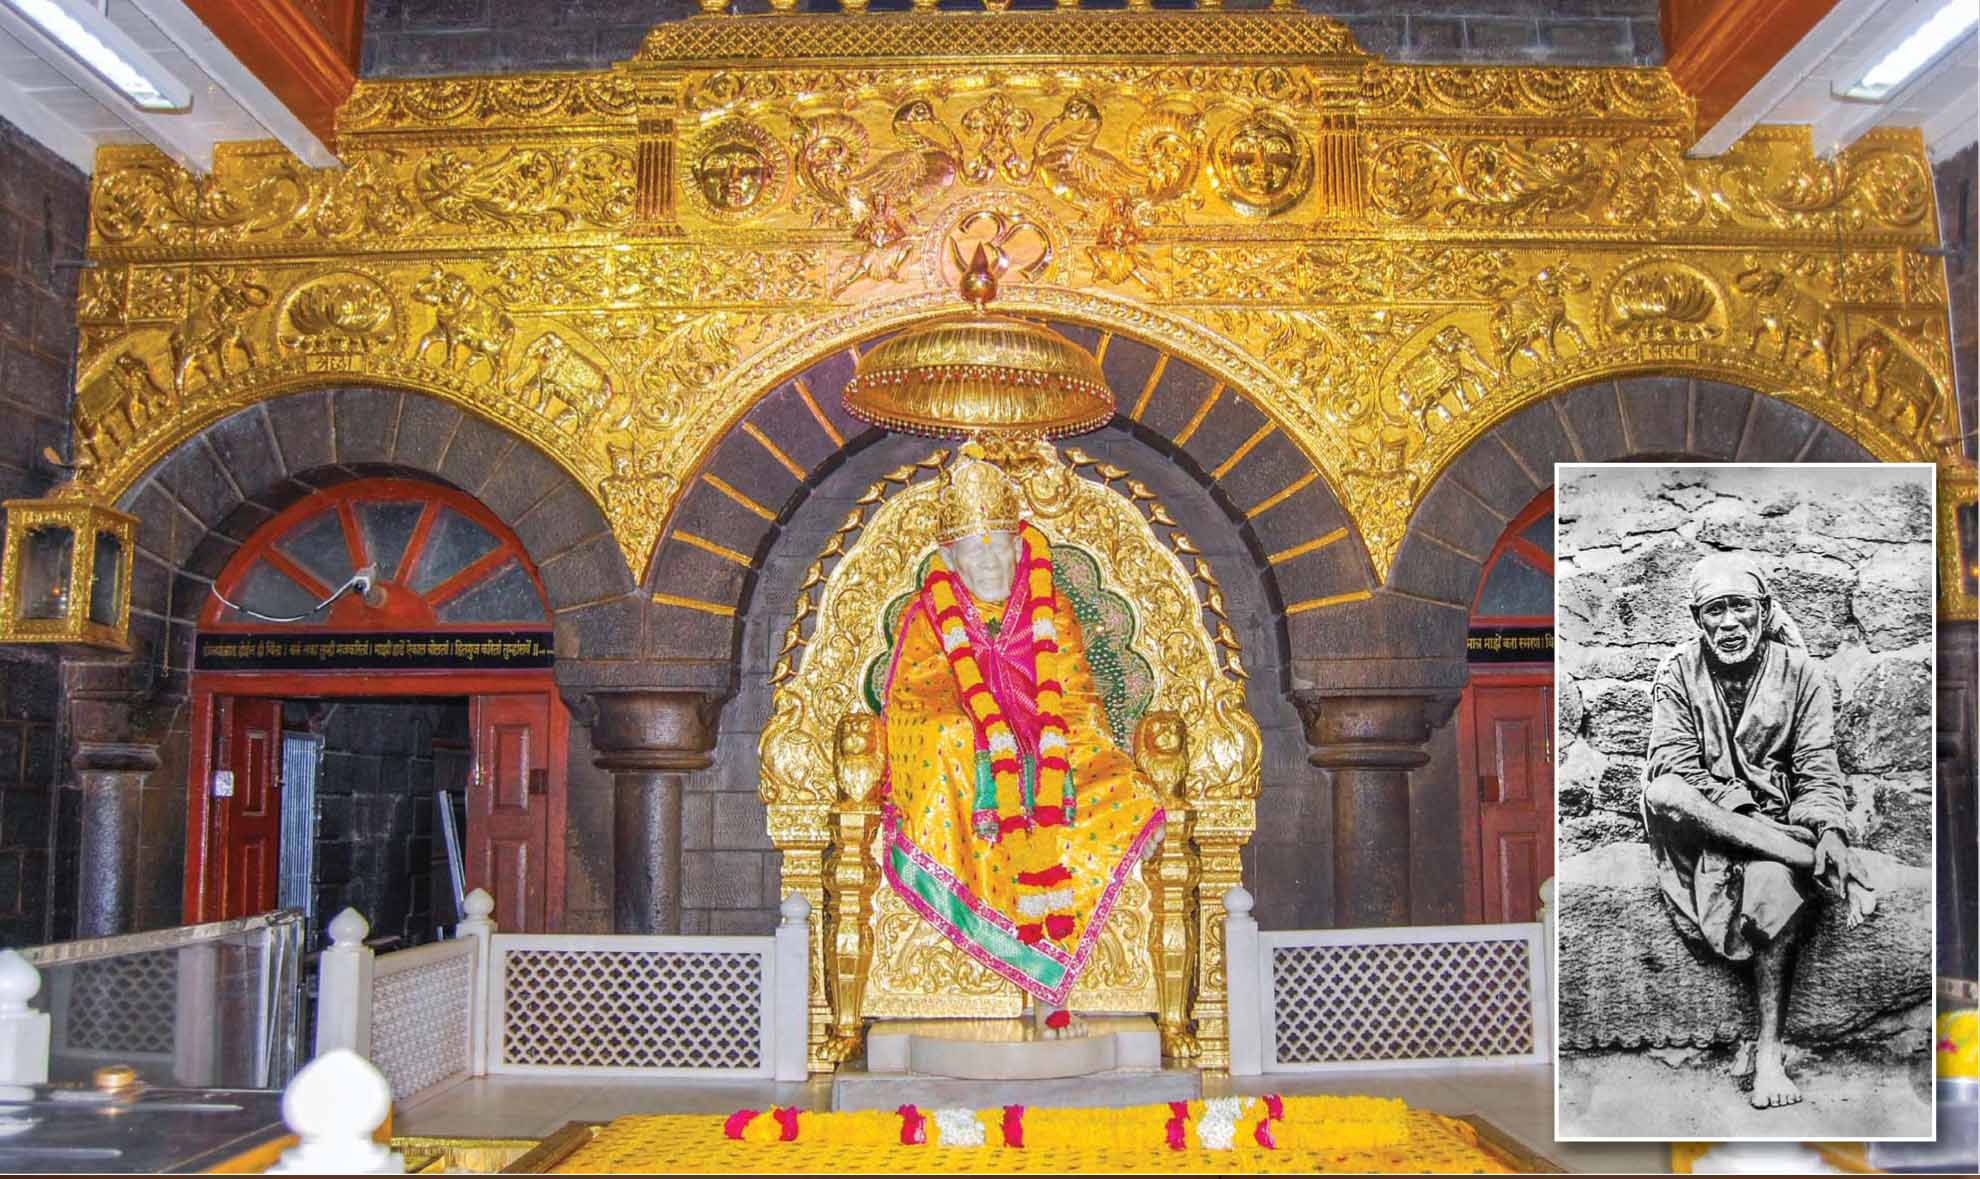 shirdi sai baba temple famous hindu temple in india